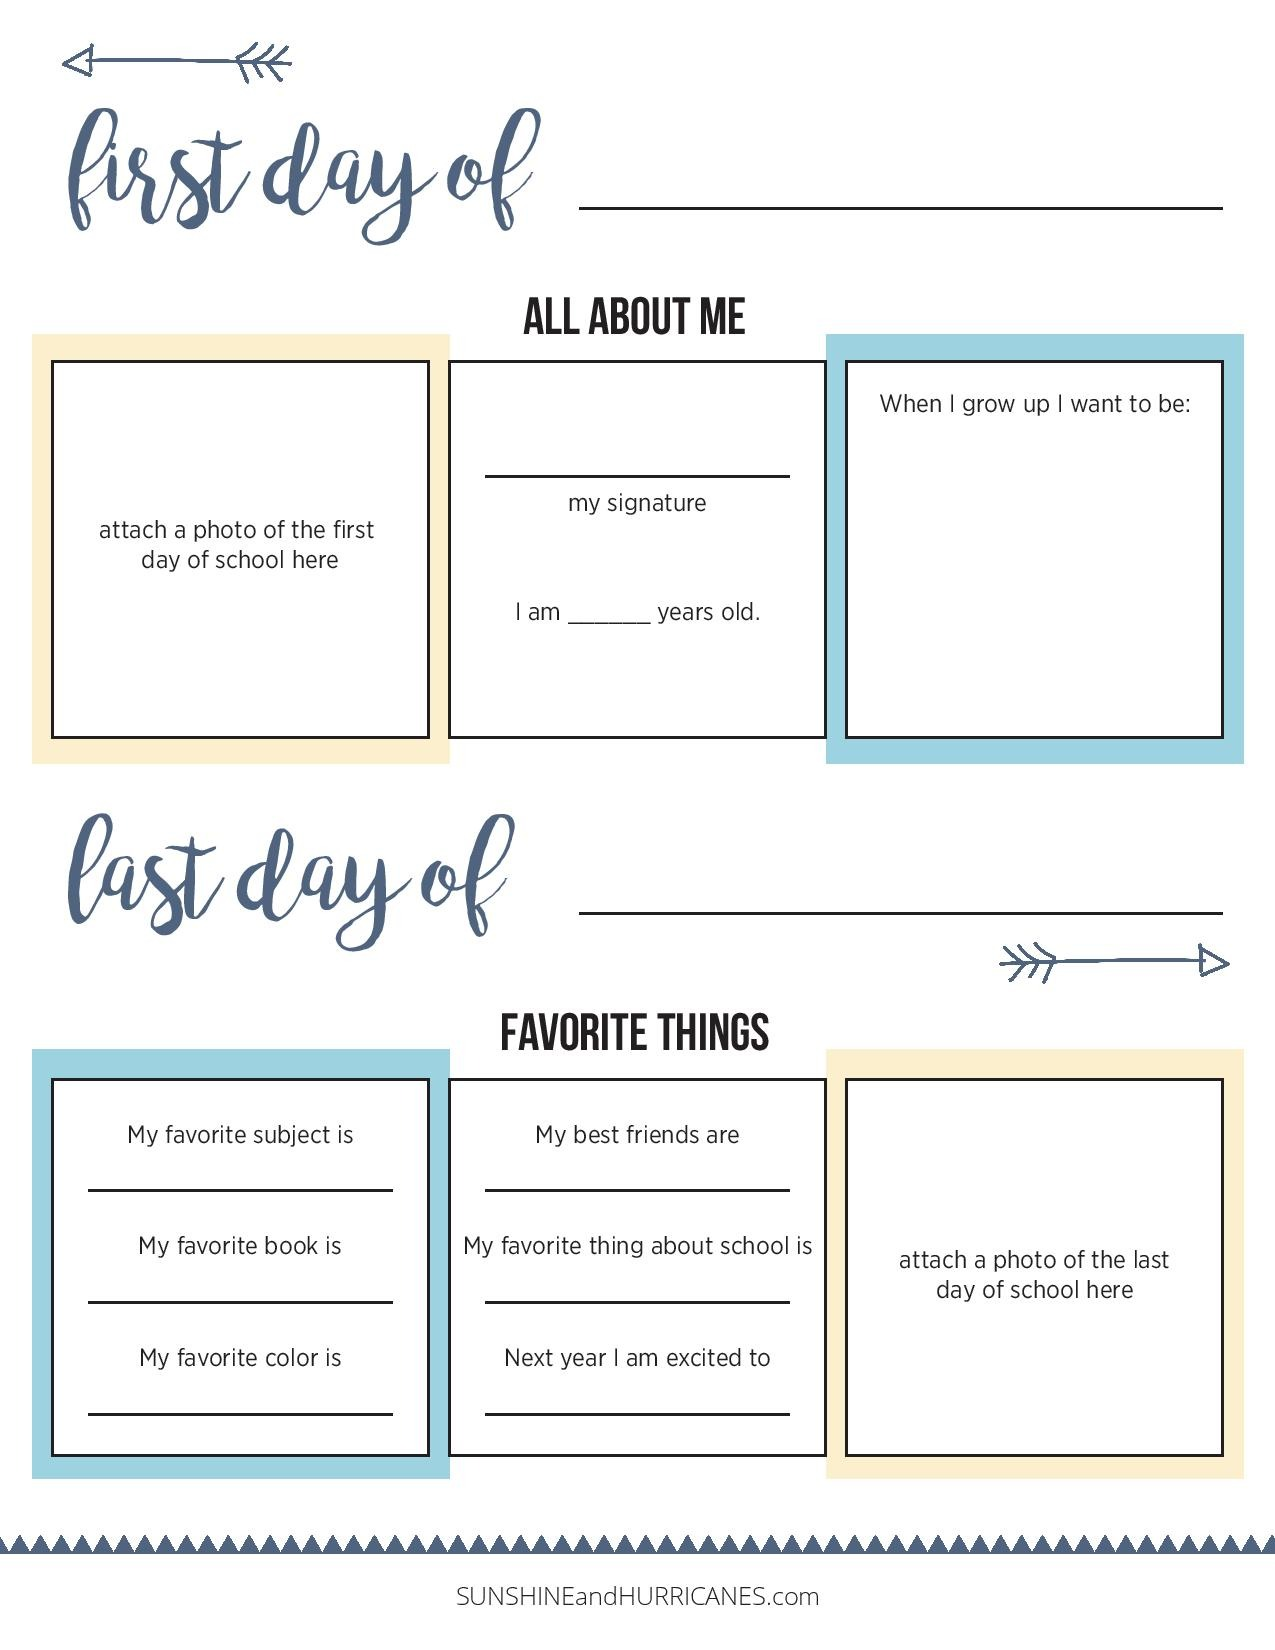 All About Me First Day Of School Printable Questionnaire